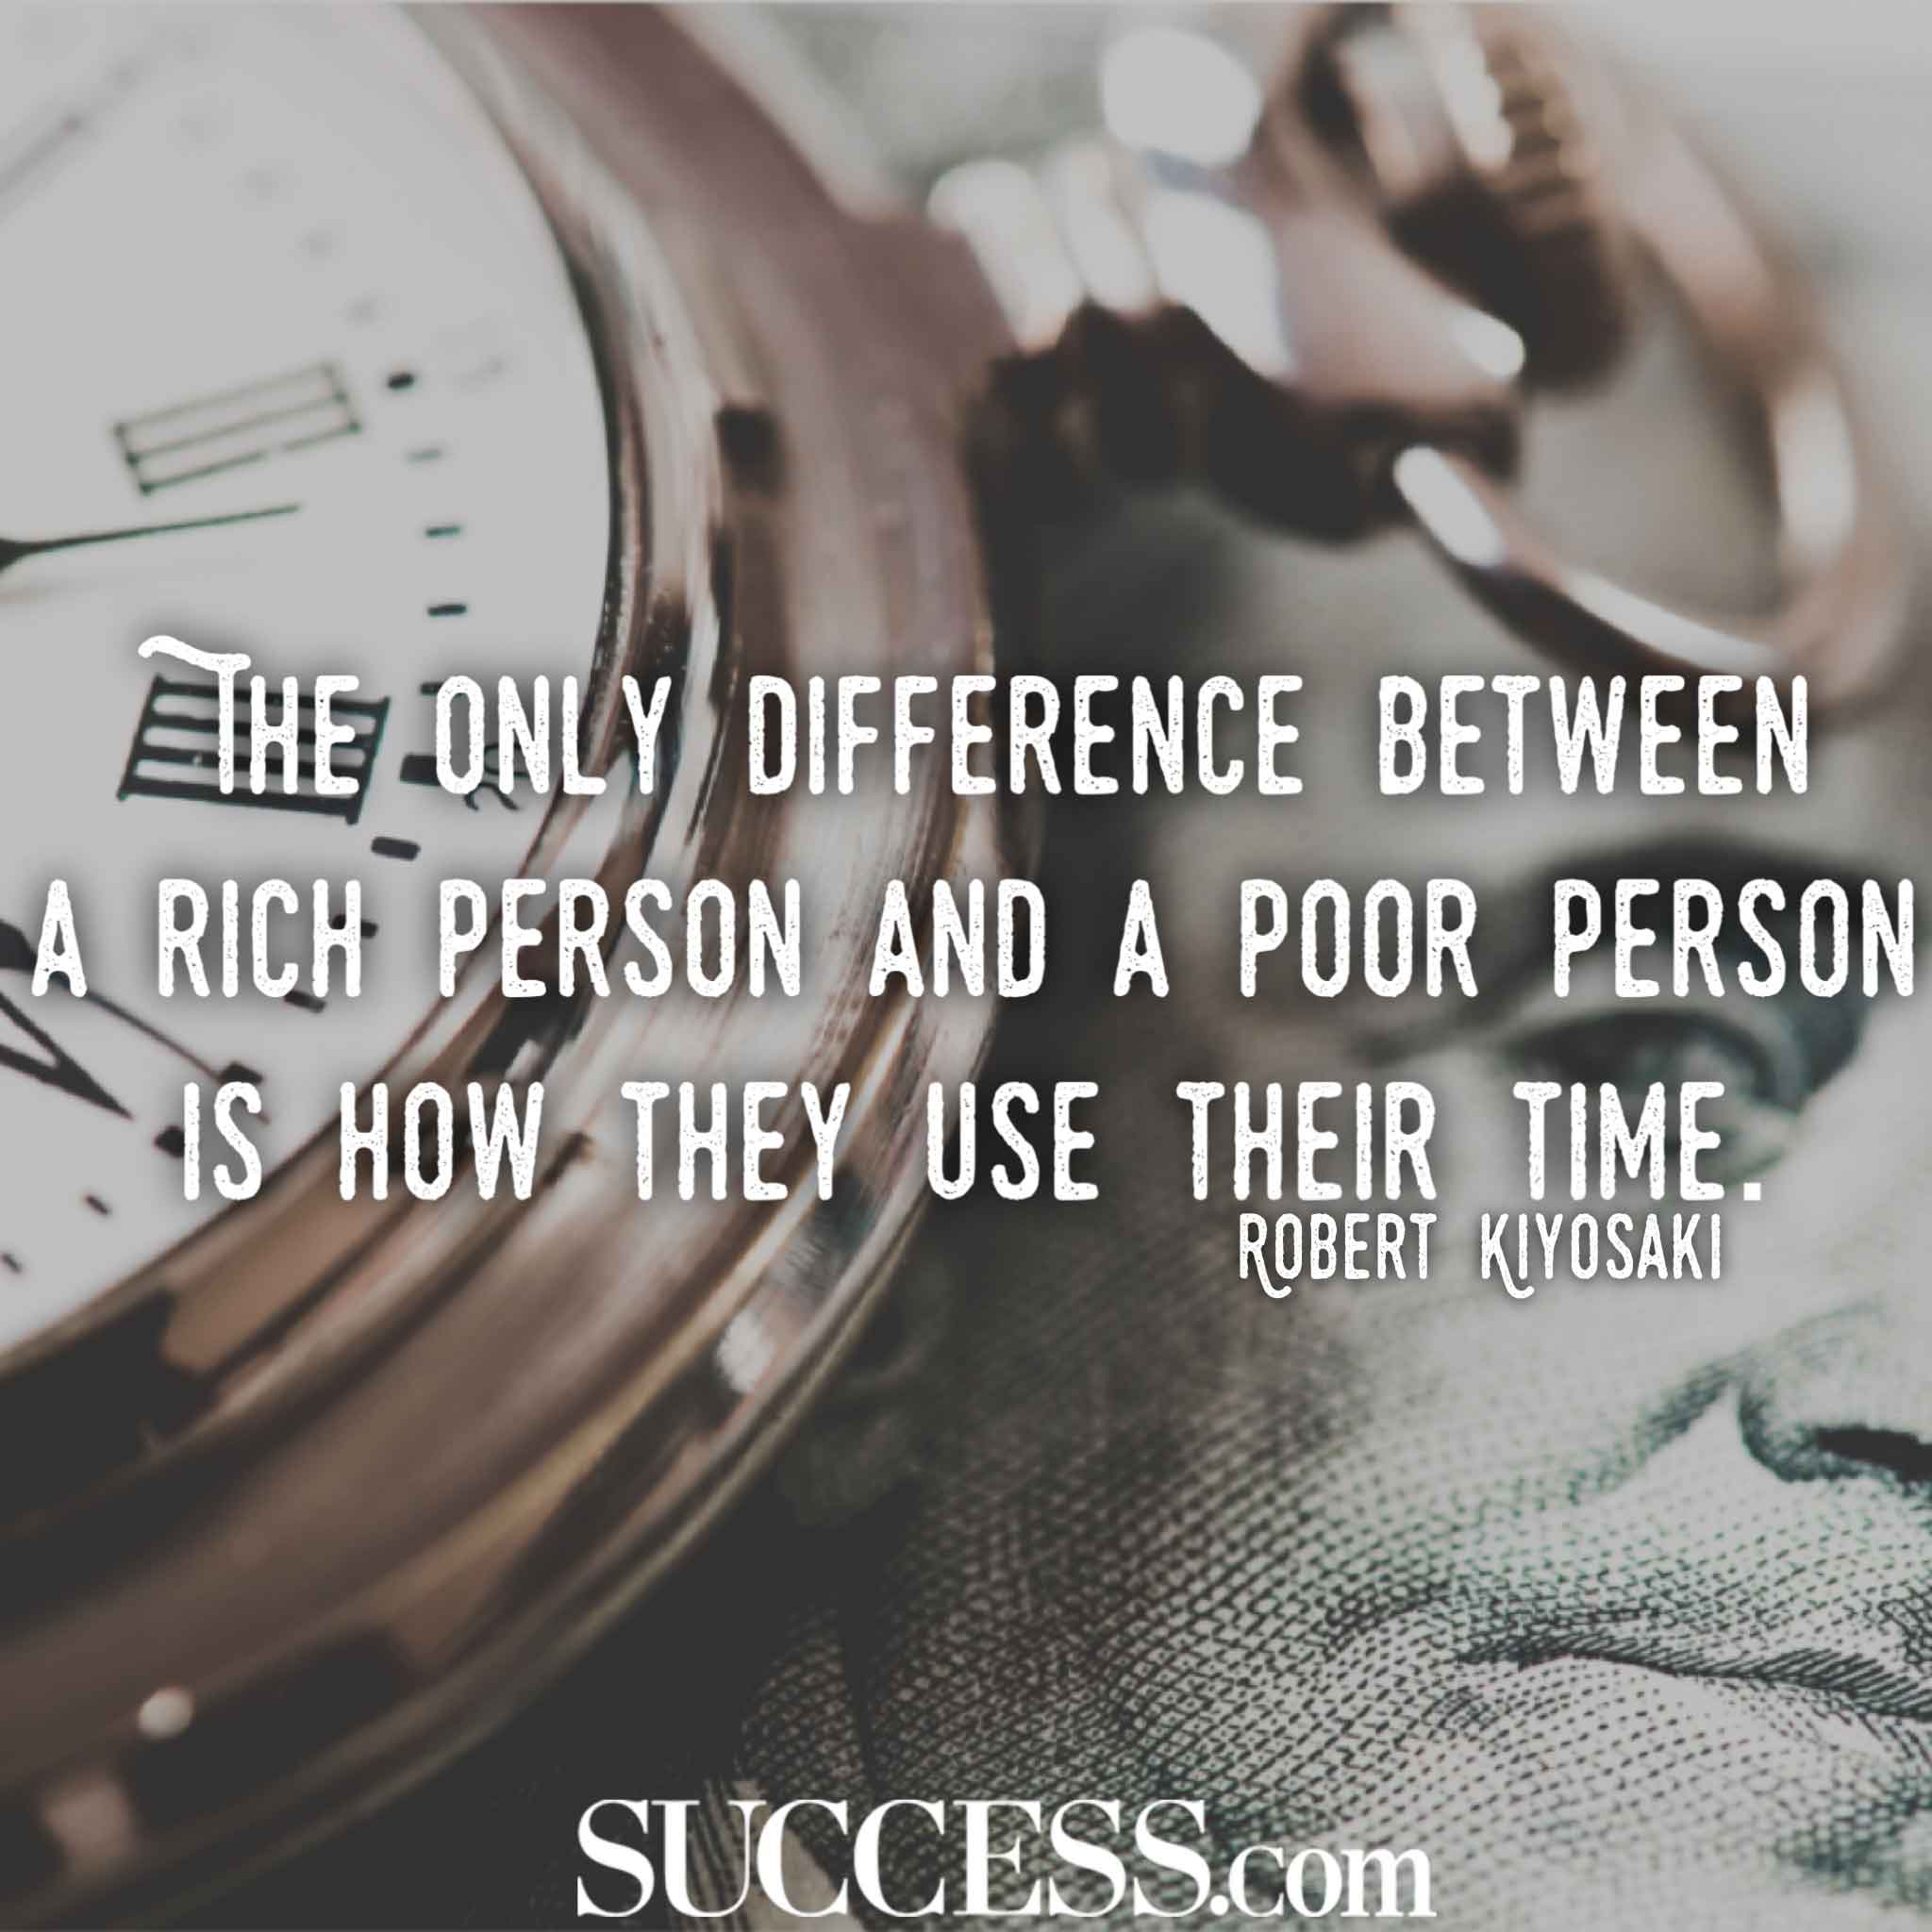 Quotes About The Rich And Poor: 17 Motivating Quotes About Becoming Rich